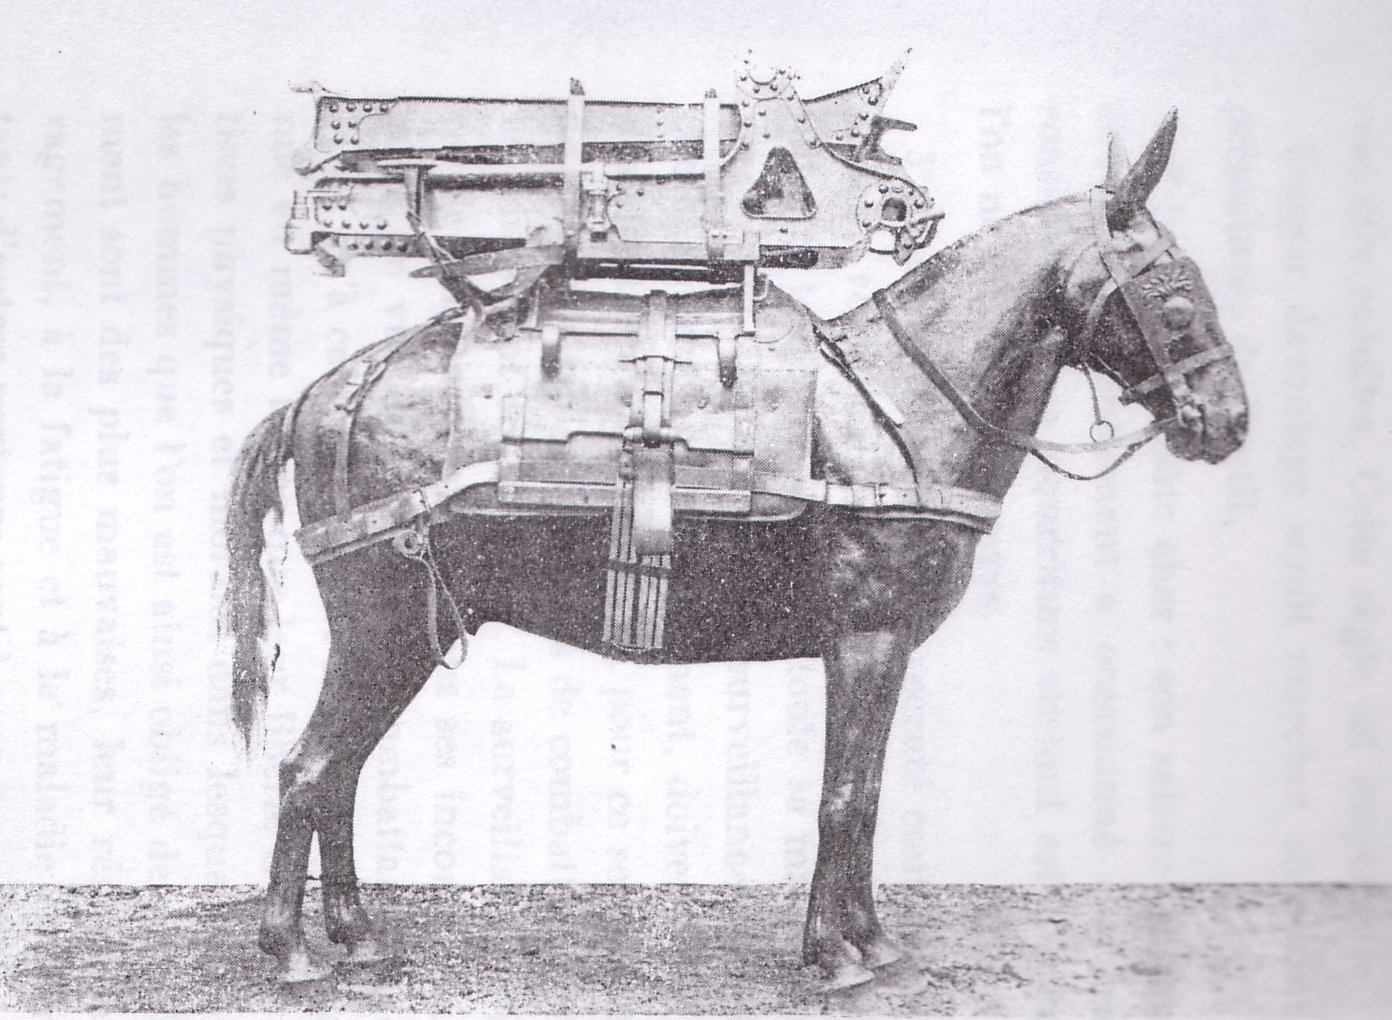 70mm carriage mounted on a pack mule